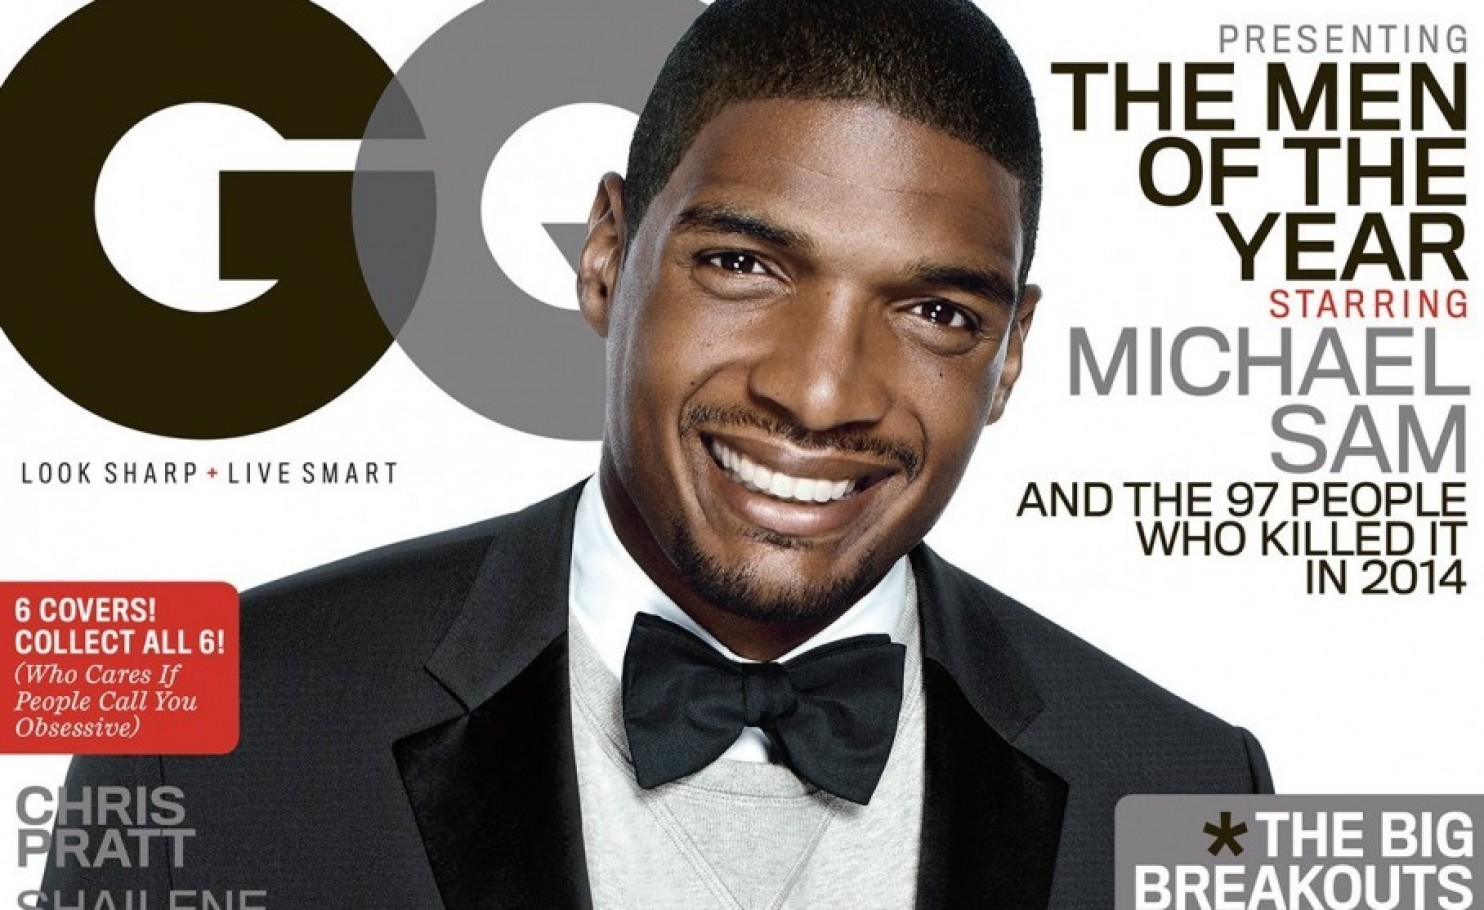 Michael Sam GQ Cover